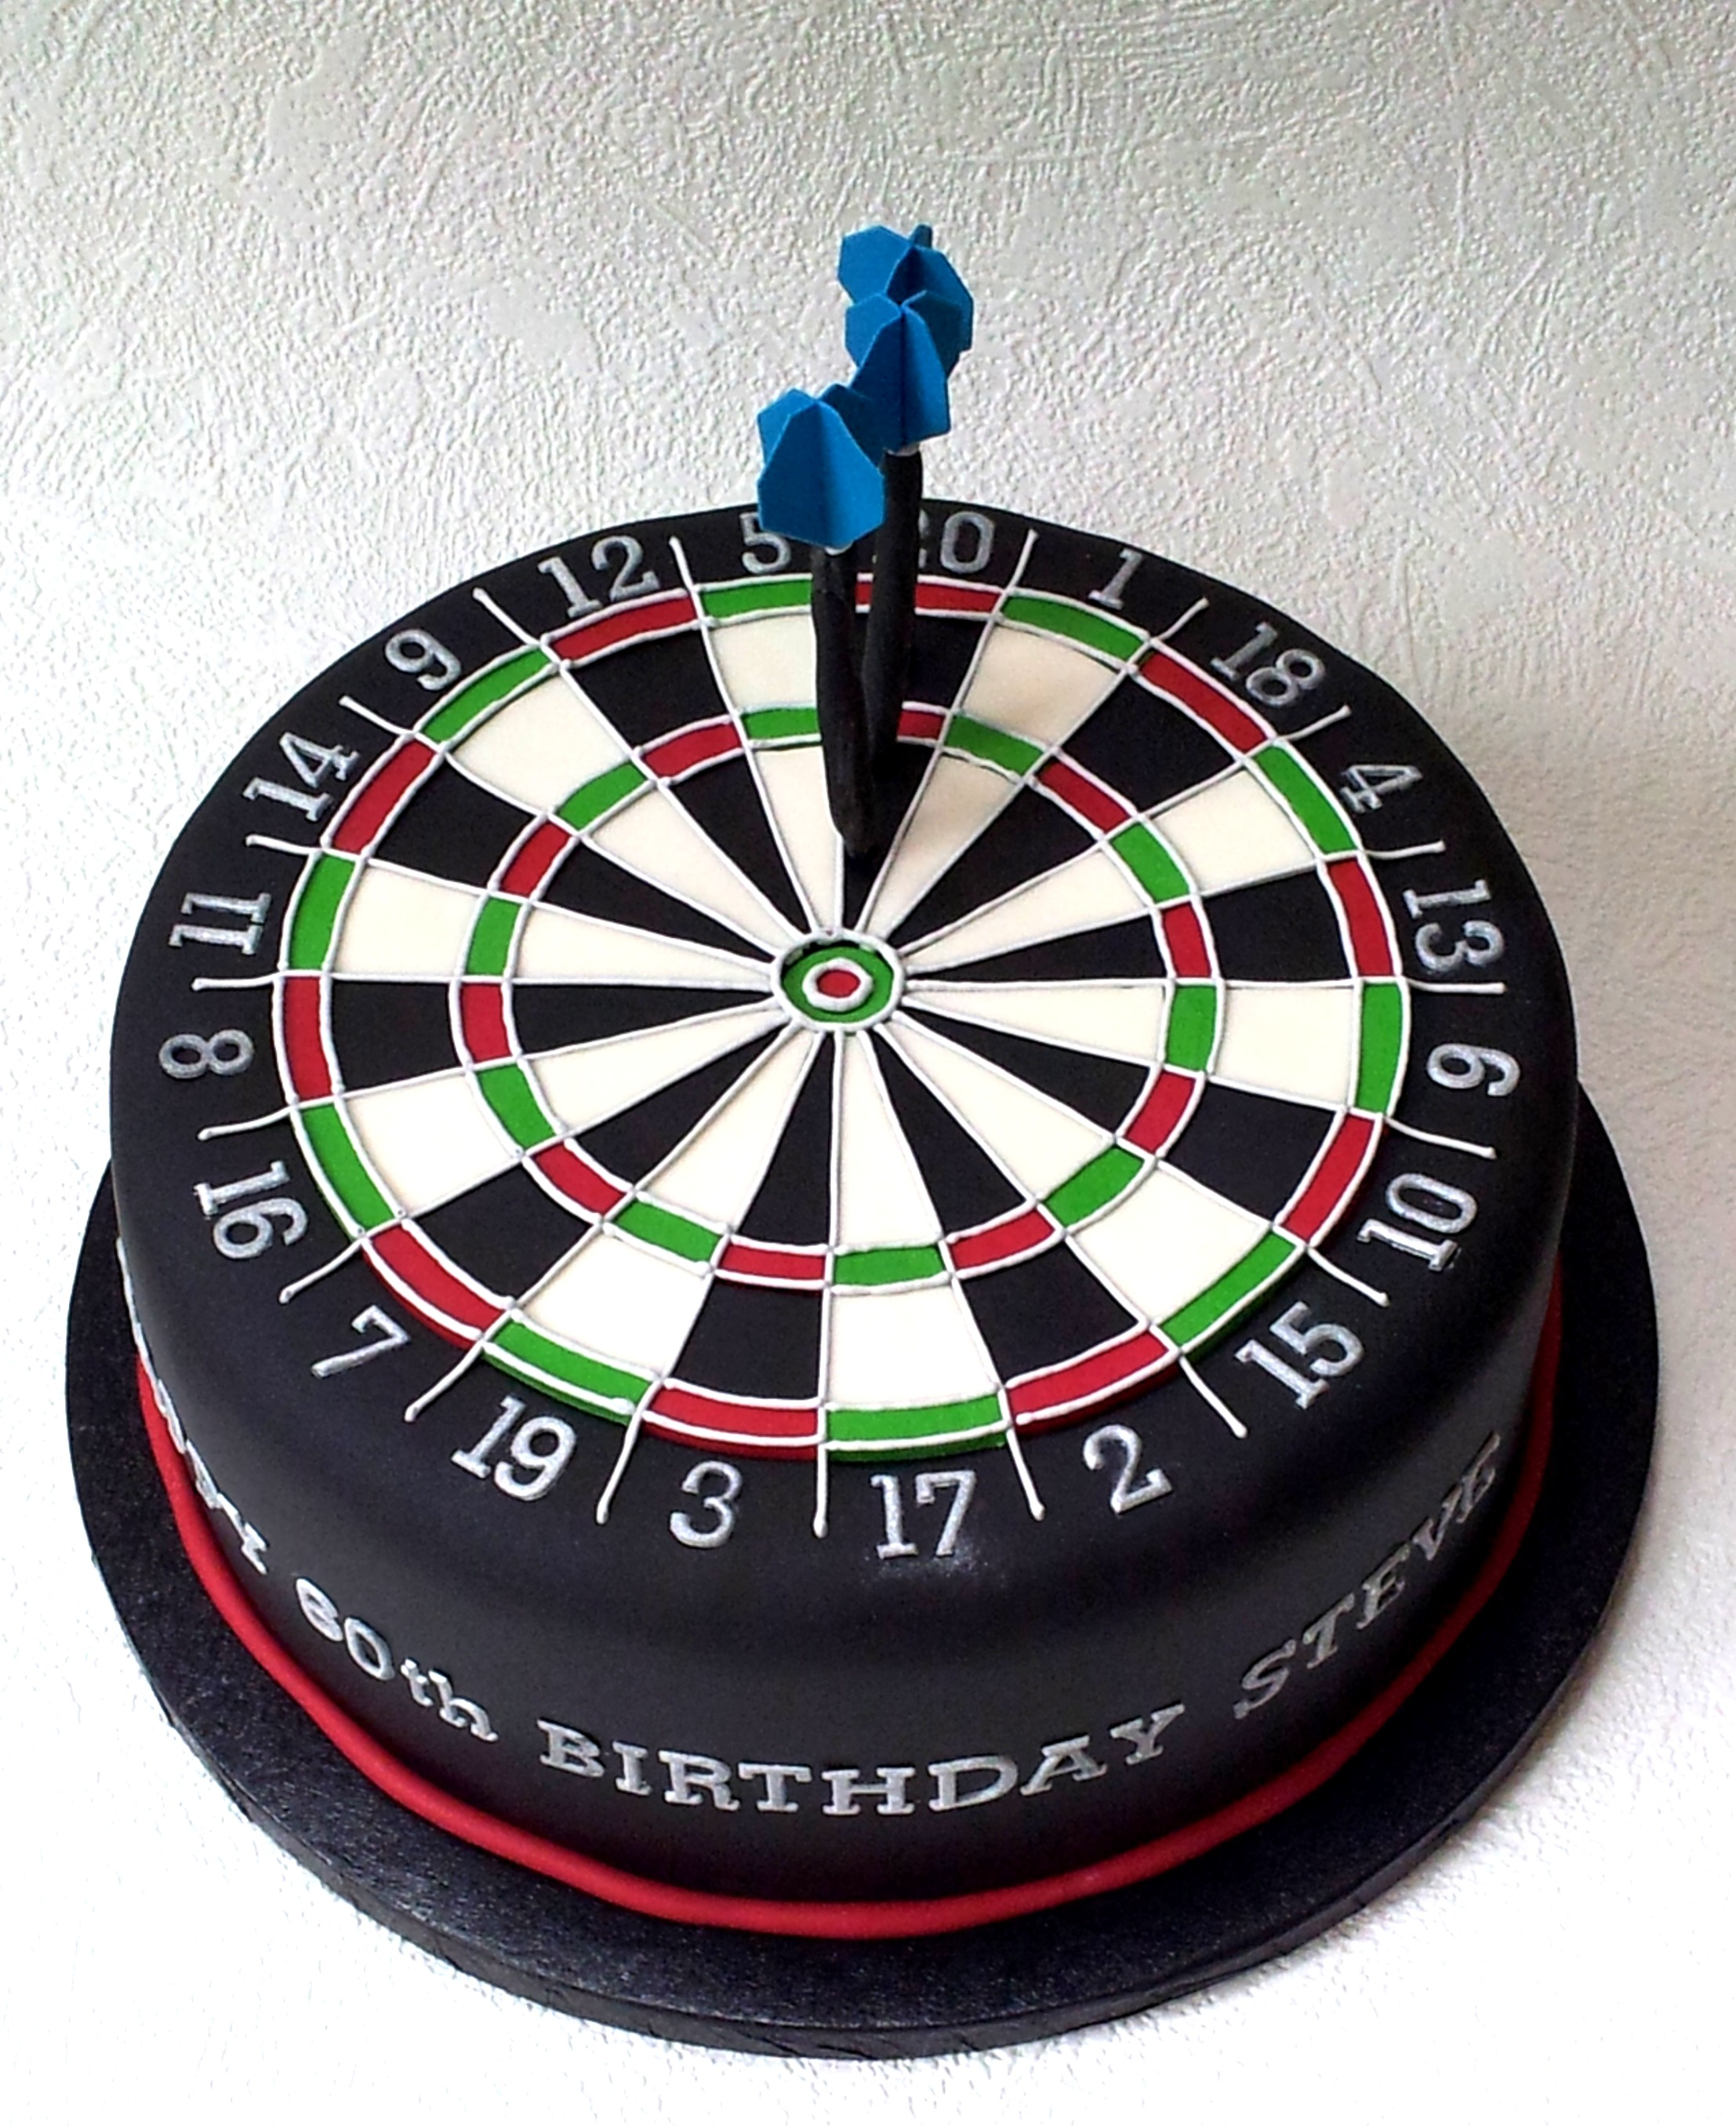 Dartboard birthday cake